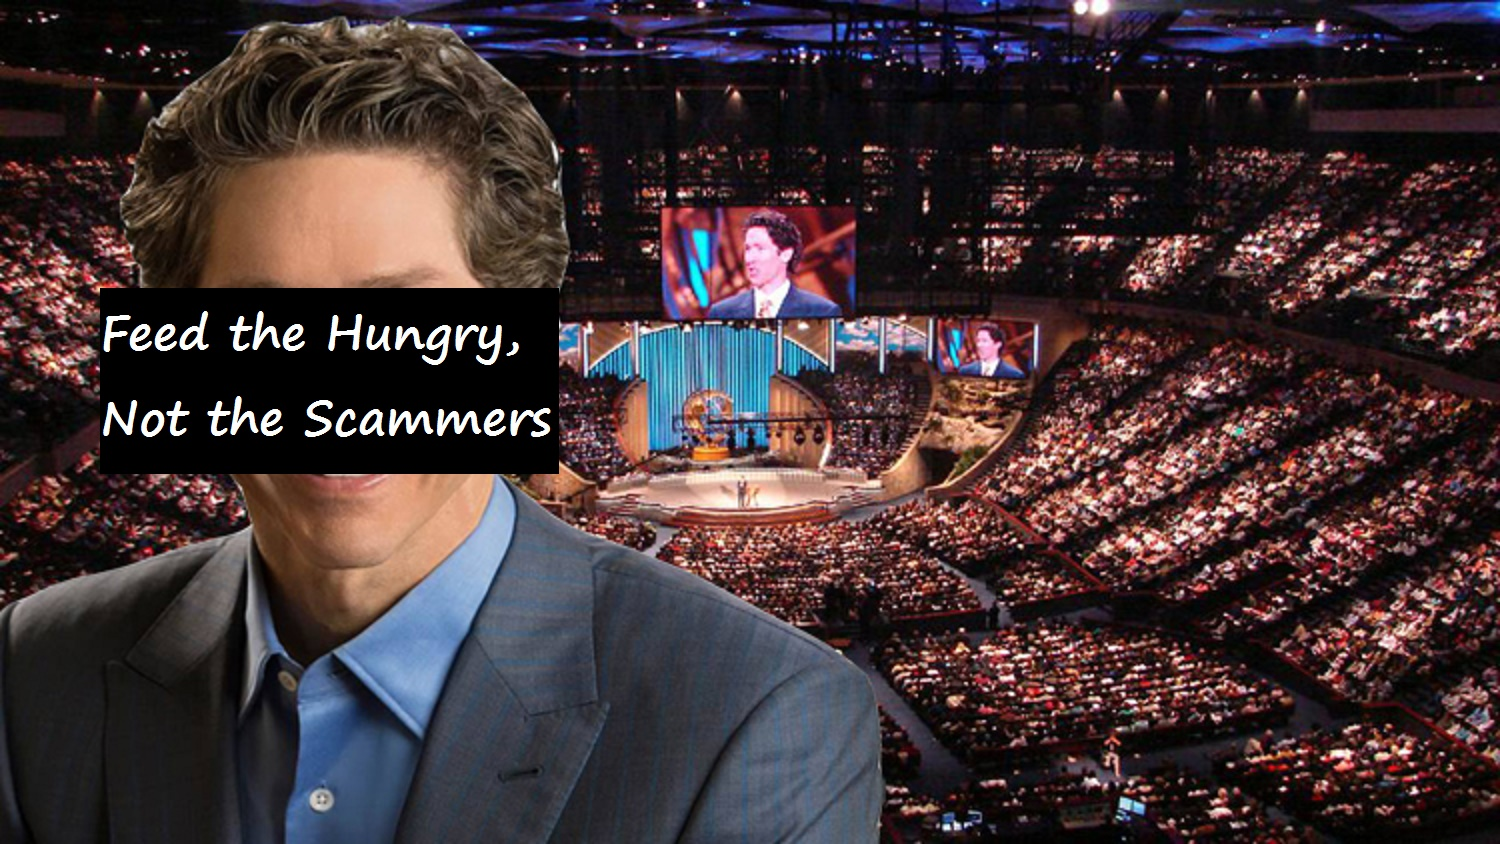 Feed the Hungry, Not the Scammers